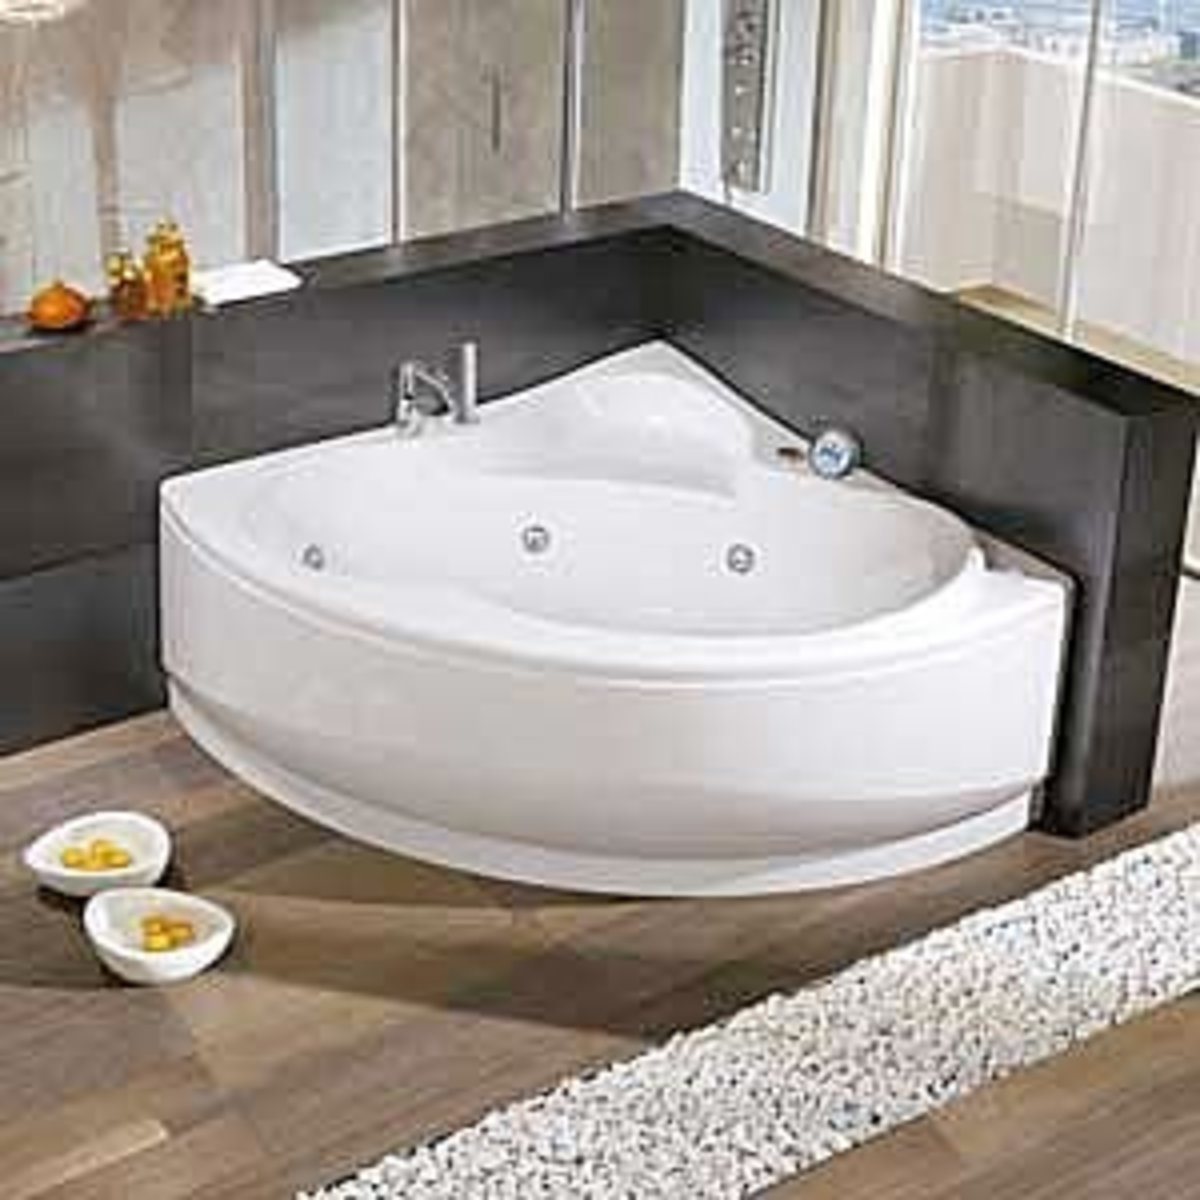 Freestanding bathtubs are available in a pie-wedge shape.